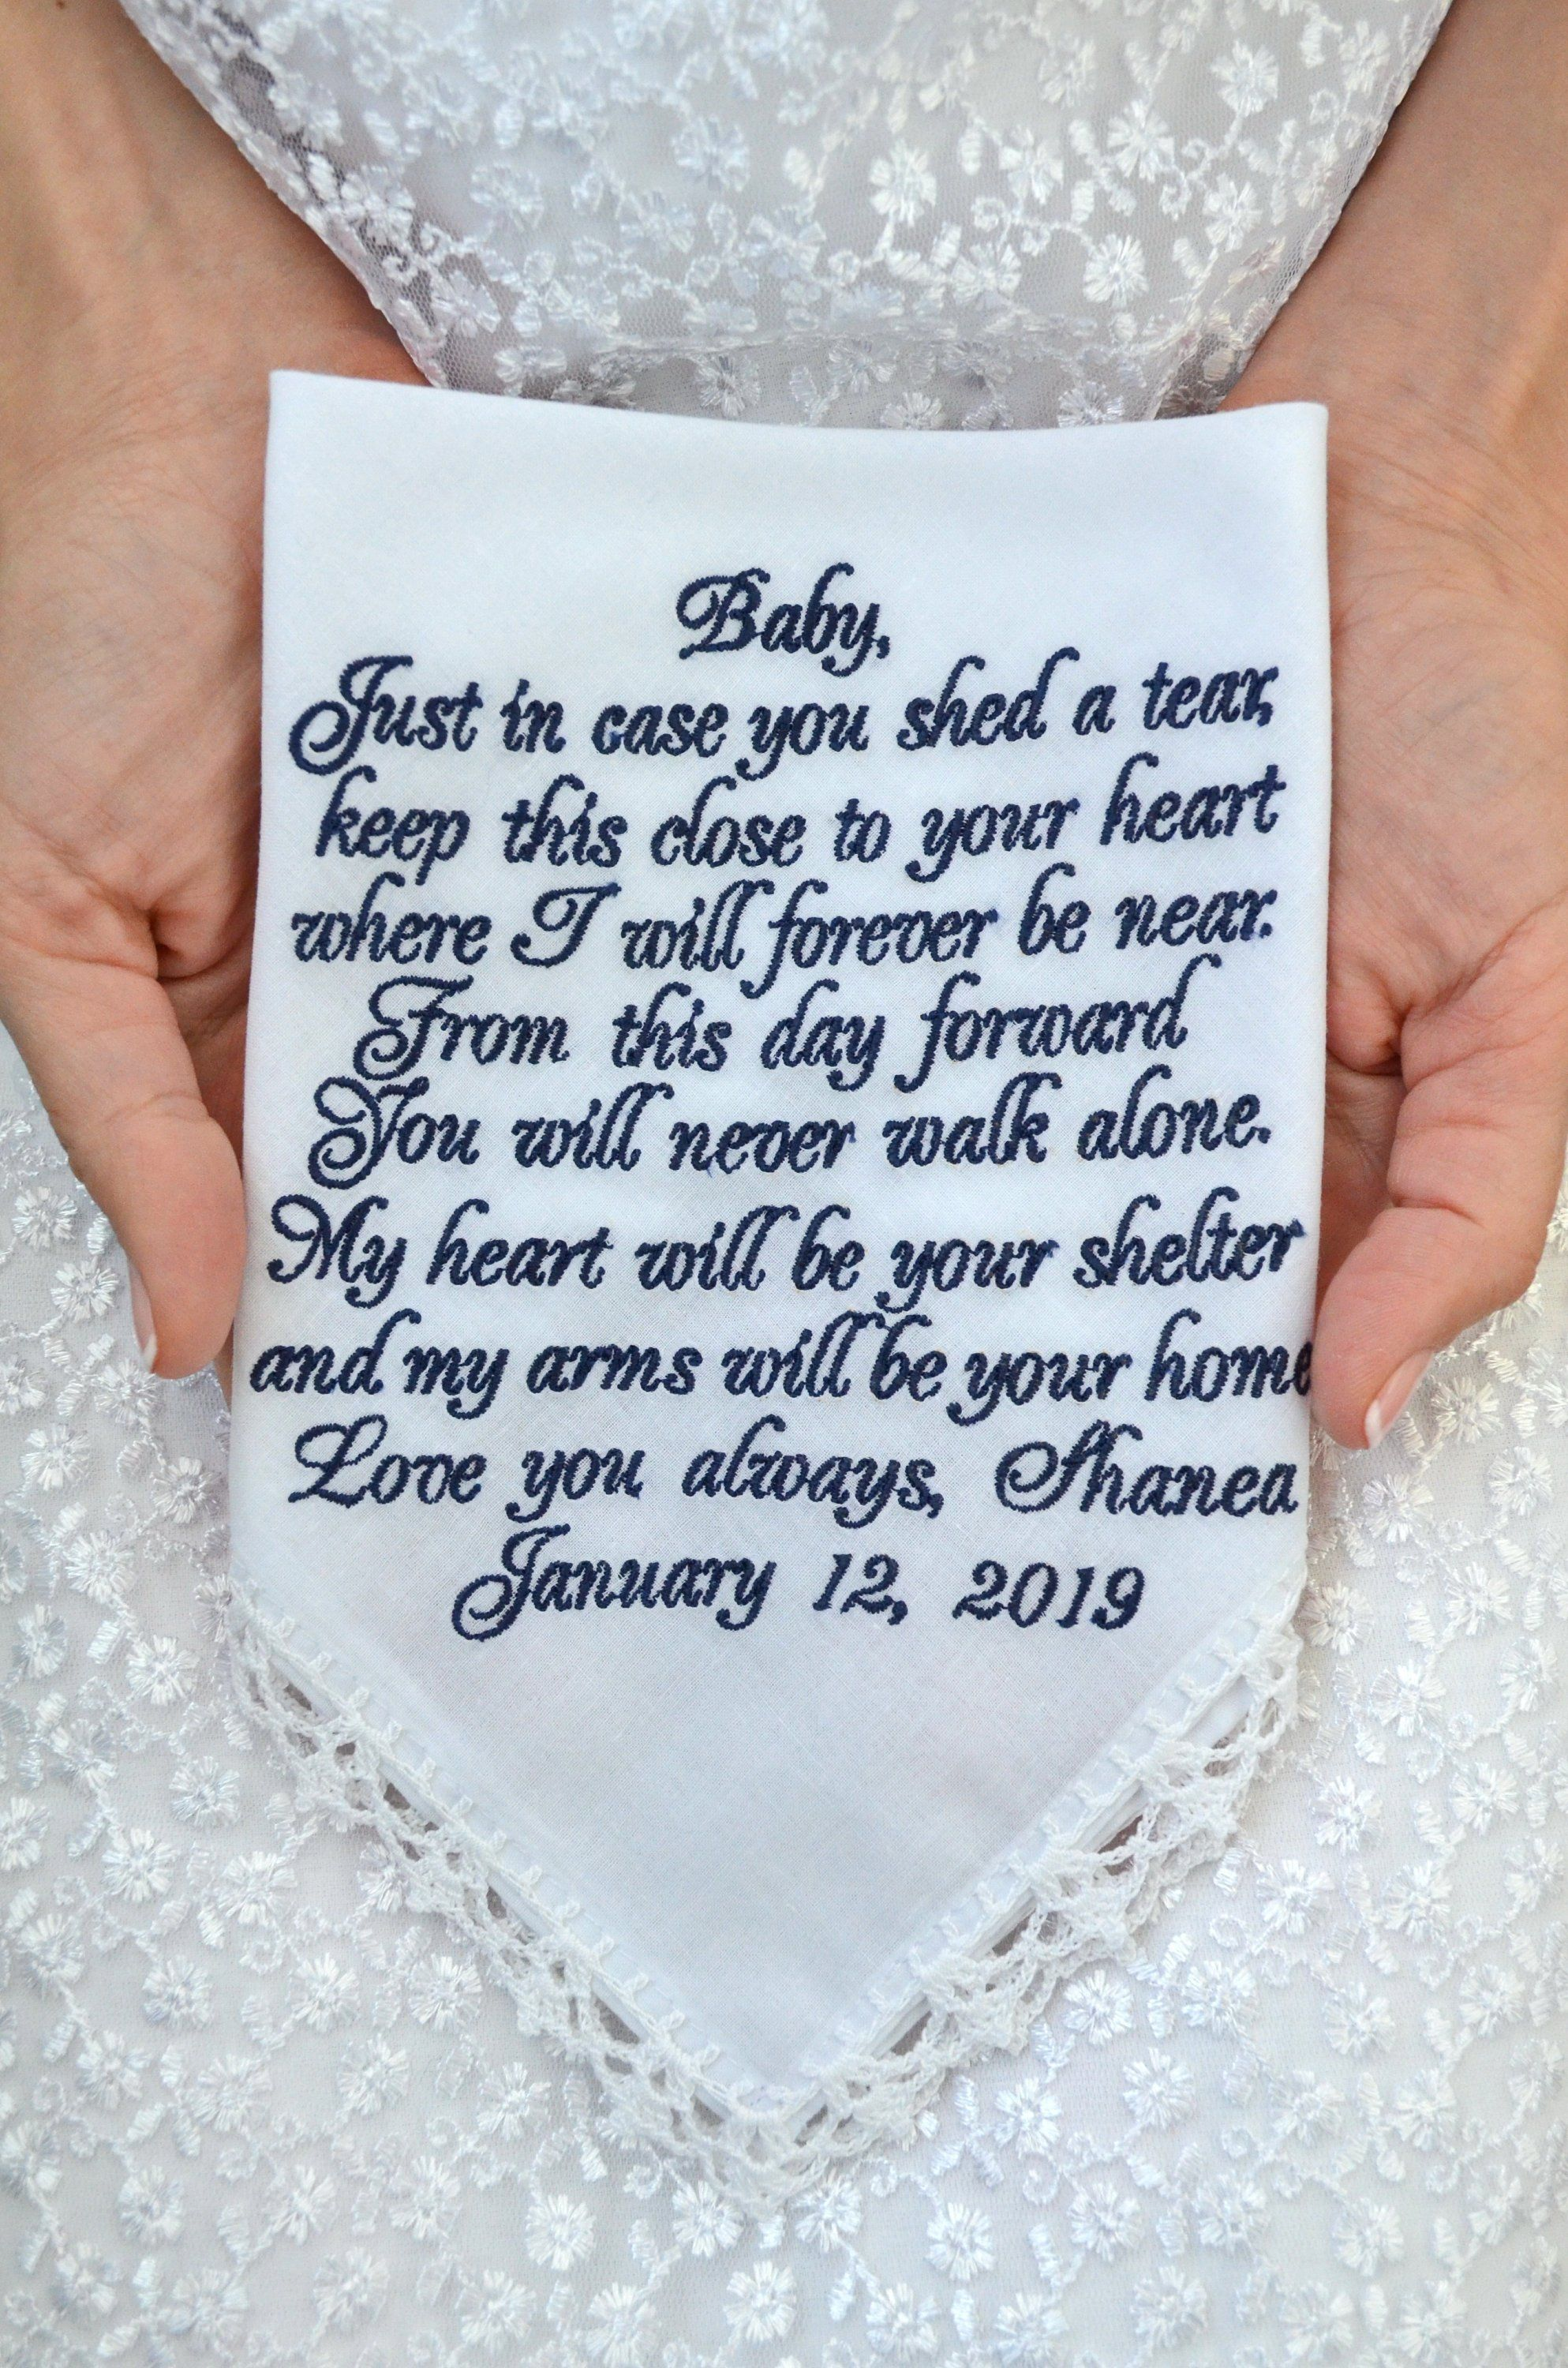 Groom Gifts From Bride Grooms Gift Handkerchief Wedding Gift Etsy In 2020 Wedding Gifts For Bride Bride And Groom Gifts Bride Gifts